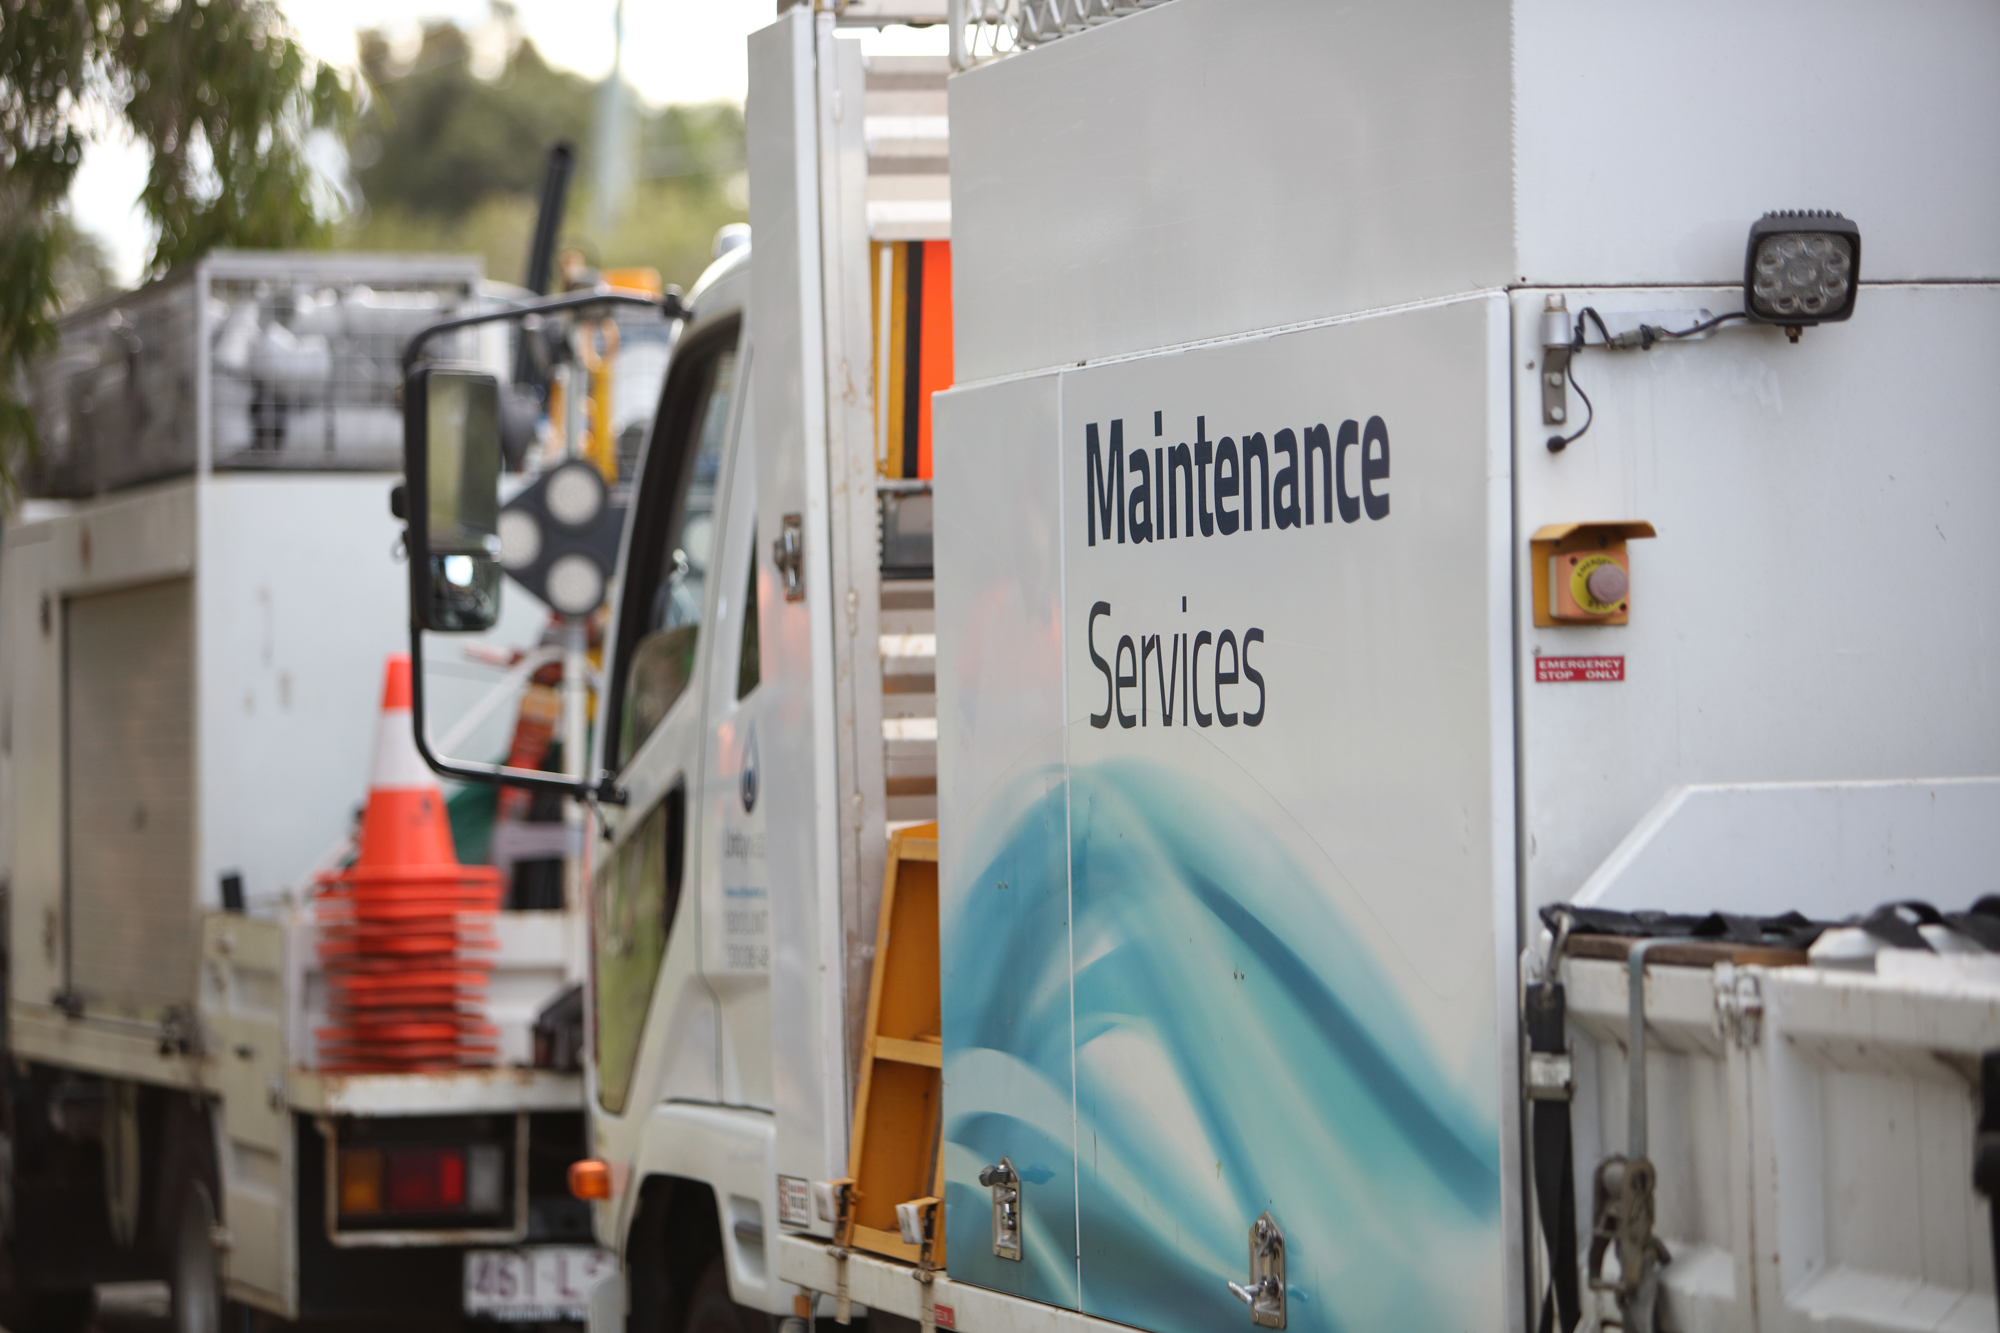 Unitywater maintenance services truck